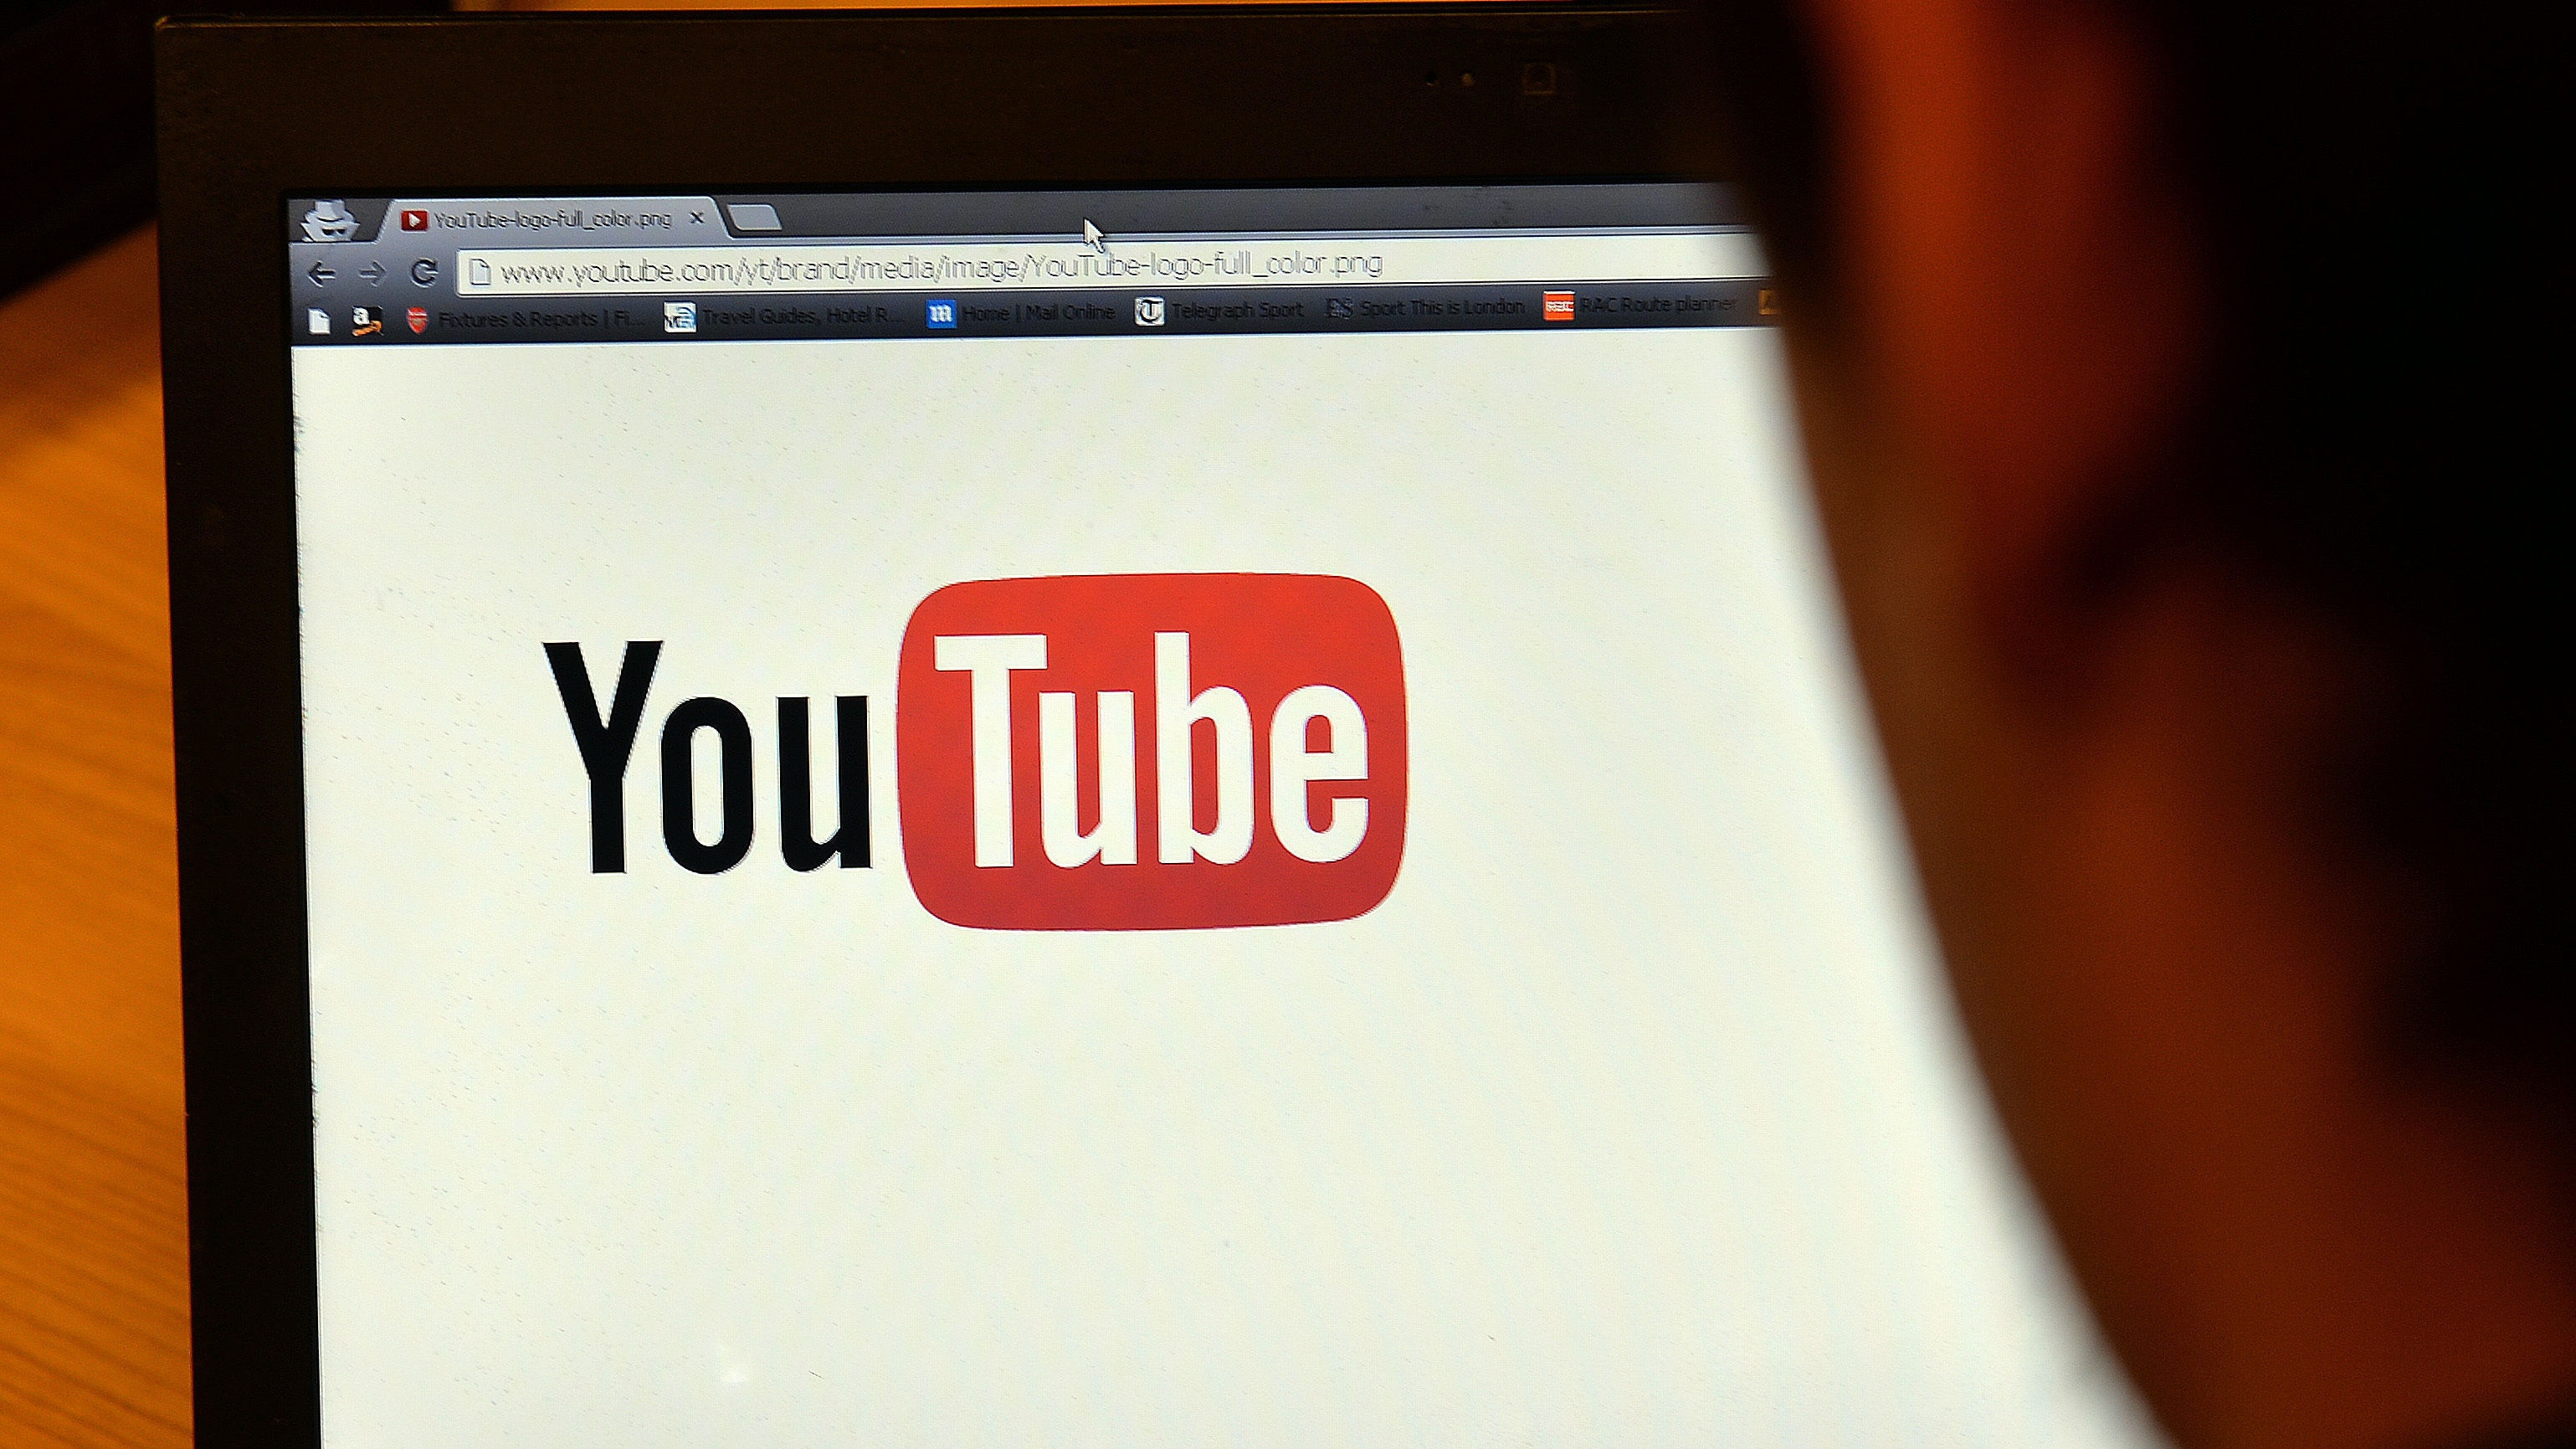 YouTube takes on conspiracy videos, offering fact-check links while watching